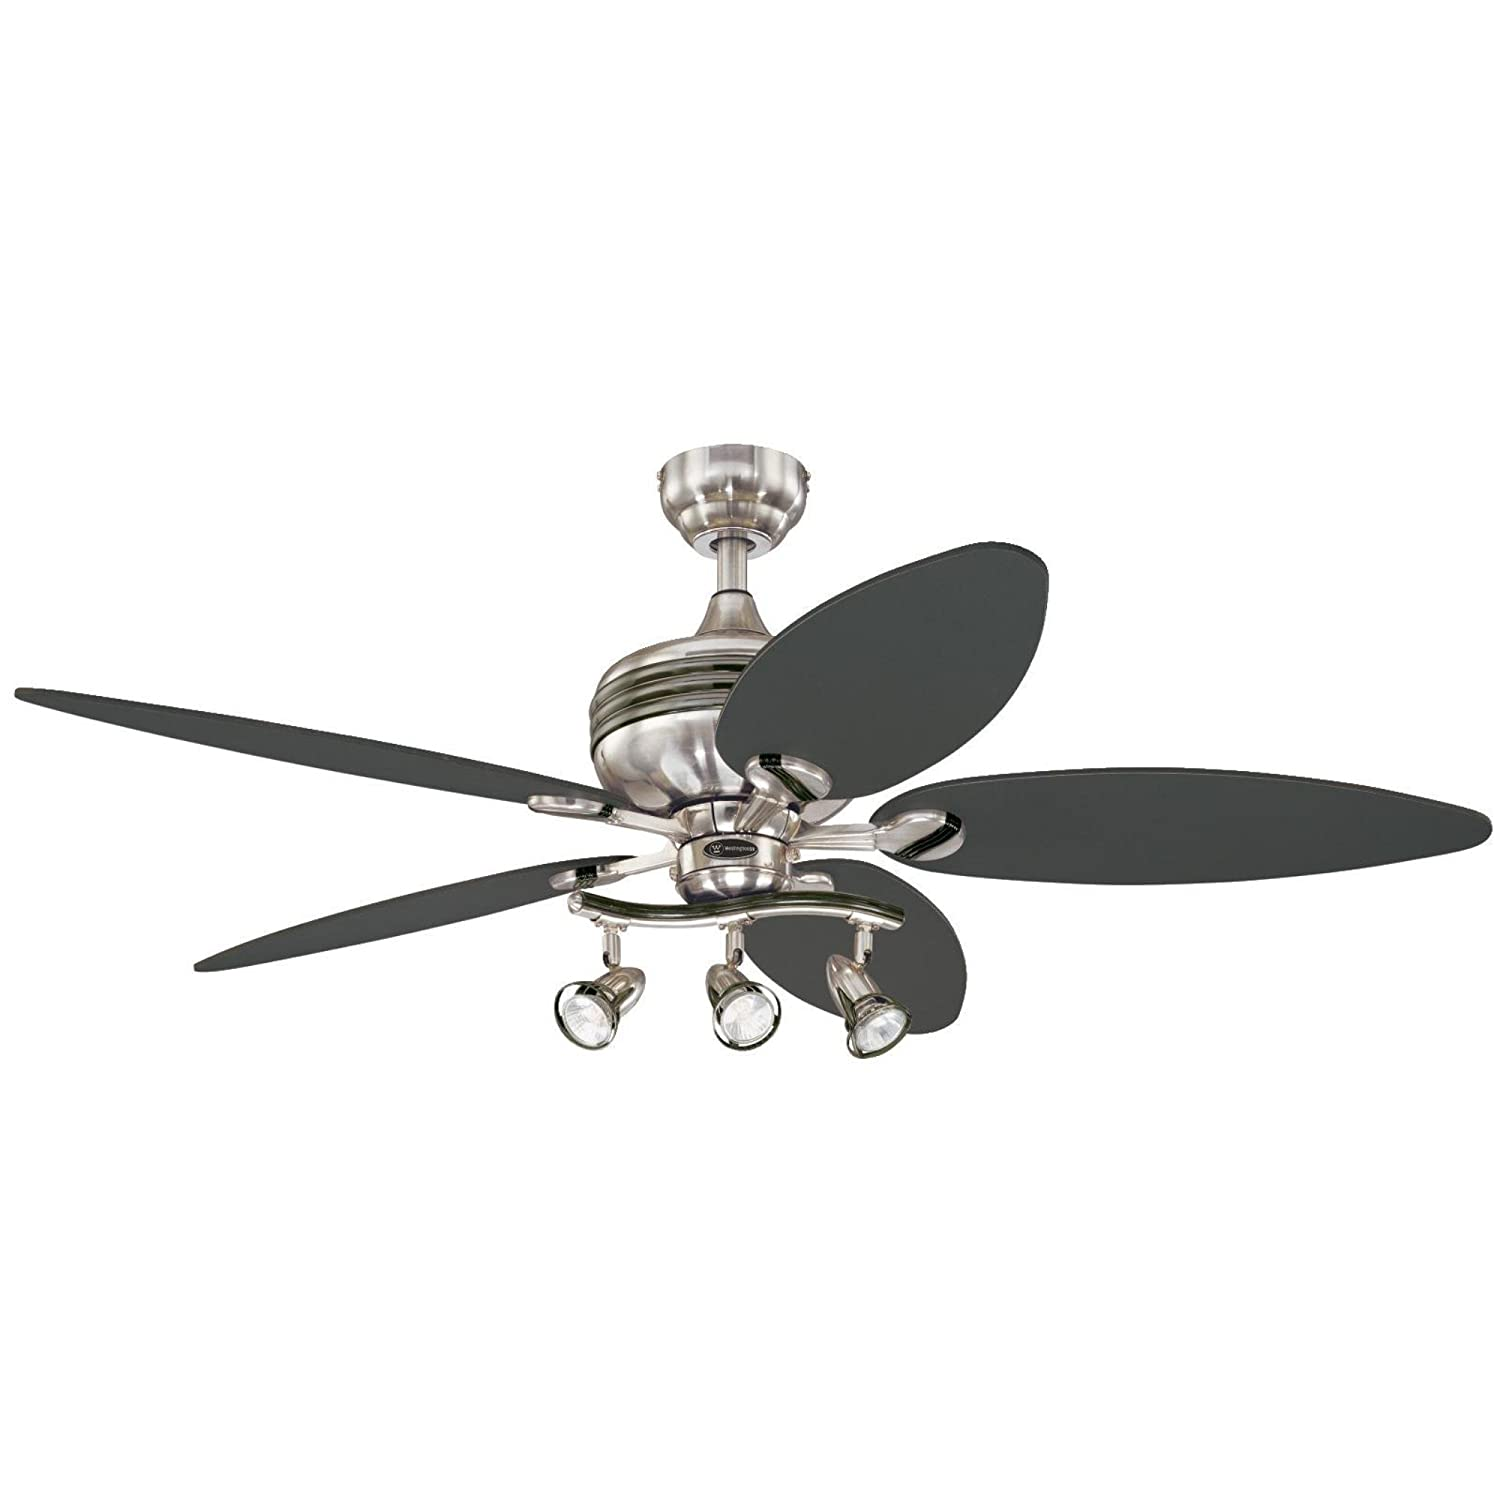 Ceiling fan light kits amazon lighting ceiling fans westinghouse 7234220 xavier ii 52 inch five blade indoor ceiling fan with three spot arubaitofo Choice Image